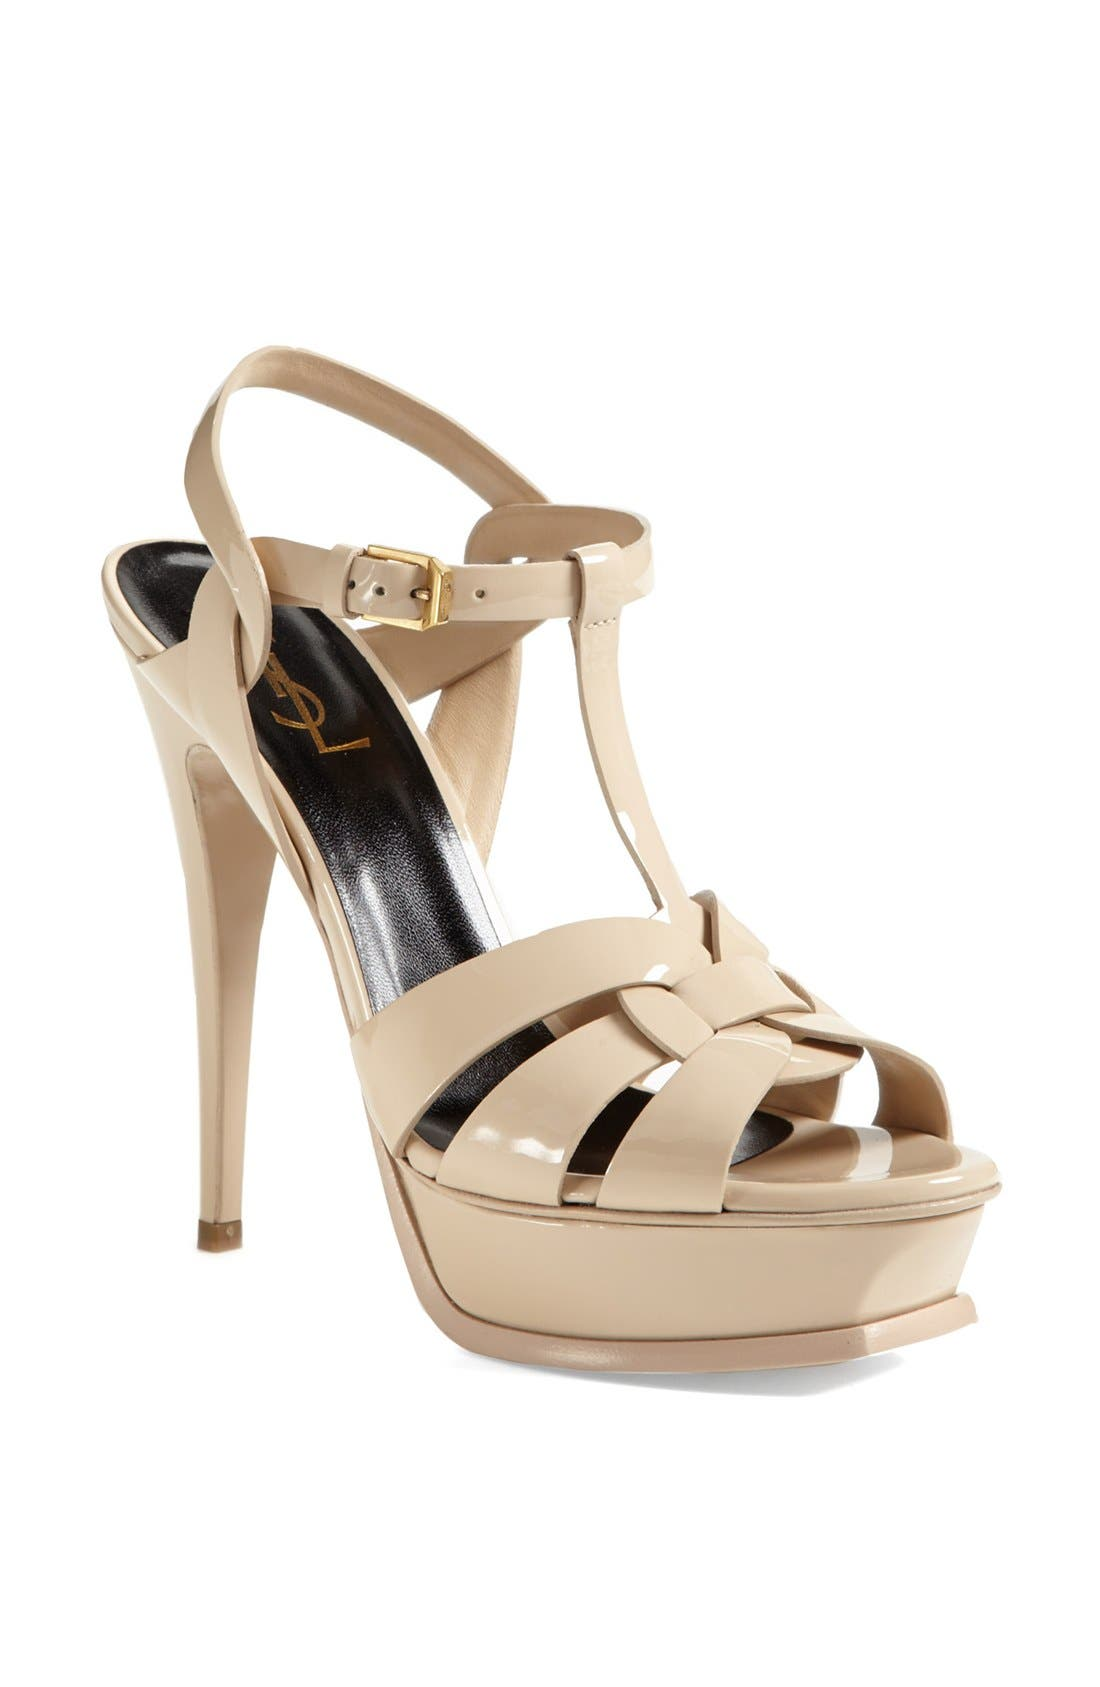 Main Image - Saint Laurent Tribute T-Strap Platform Sandal (Women)